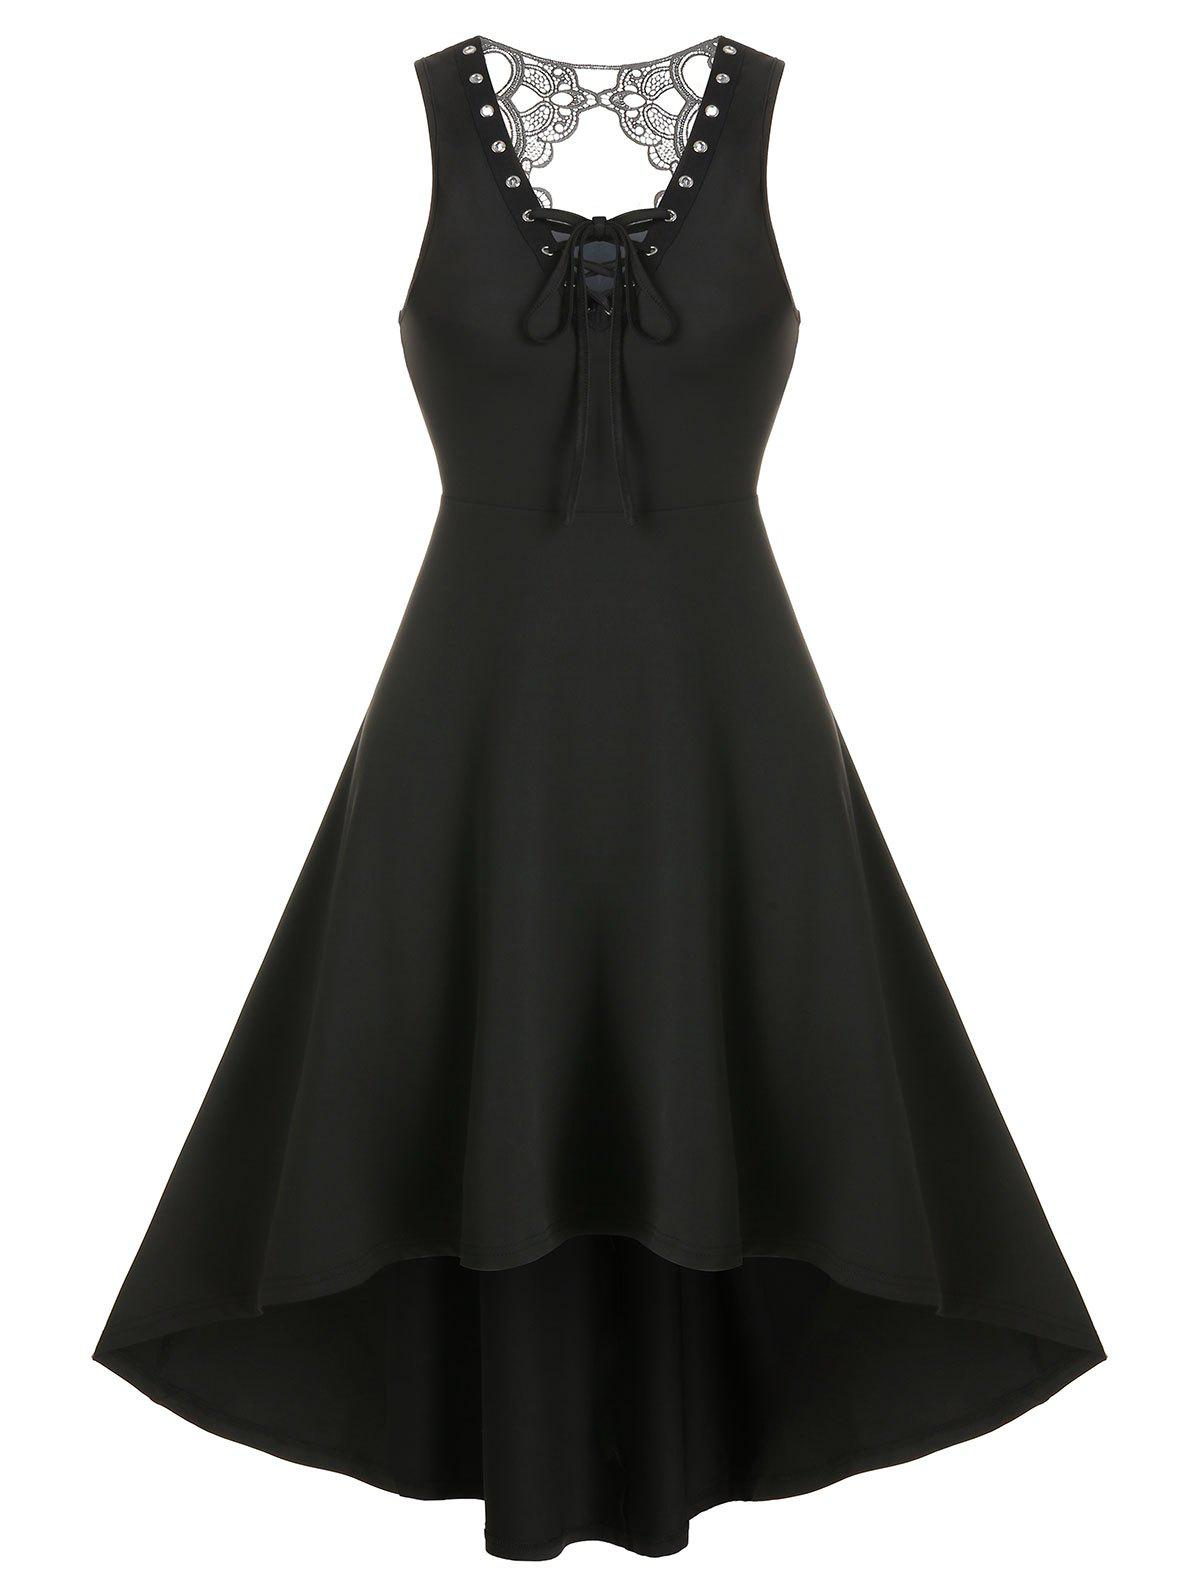 Fancy Lace Insert Lace-up Sleeveless High Low Gothic Dress